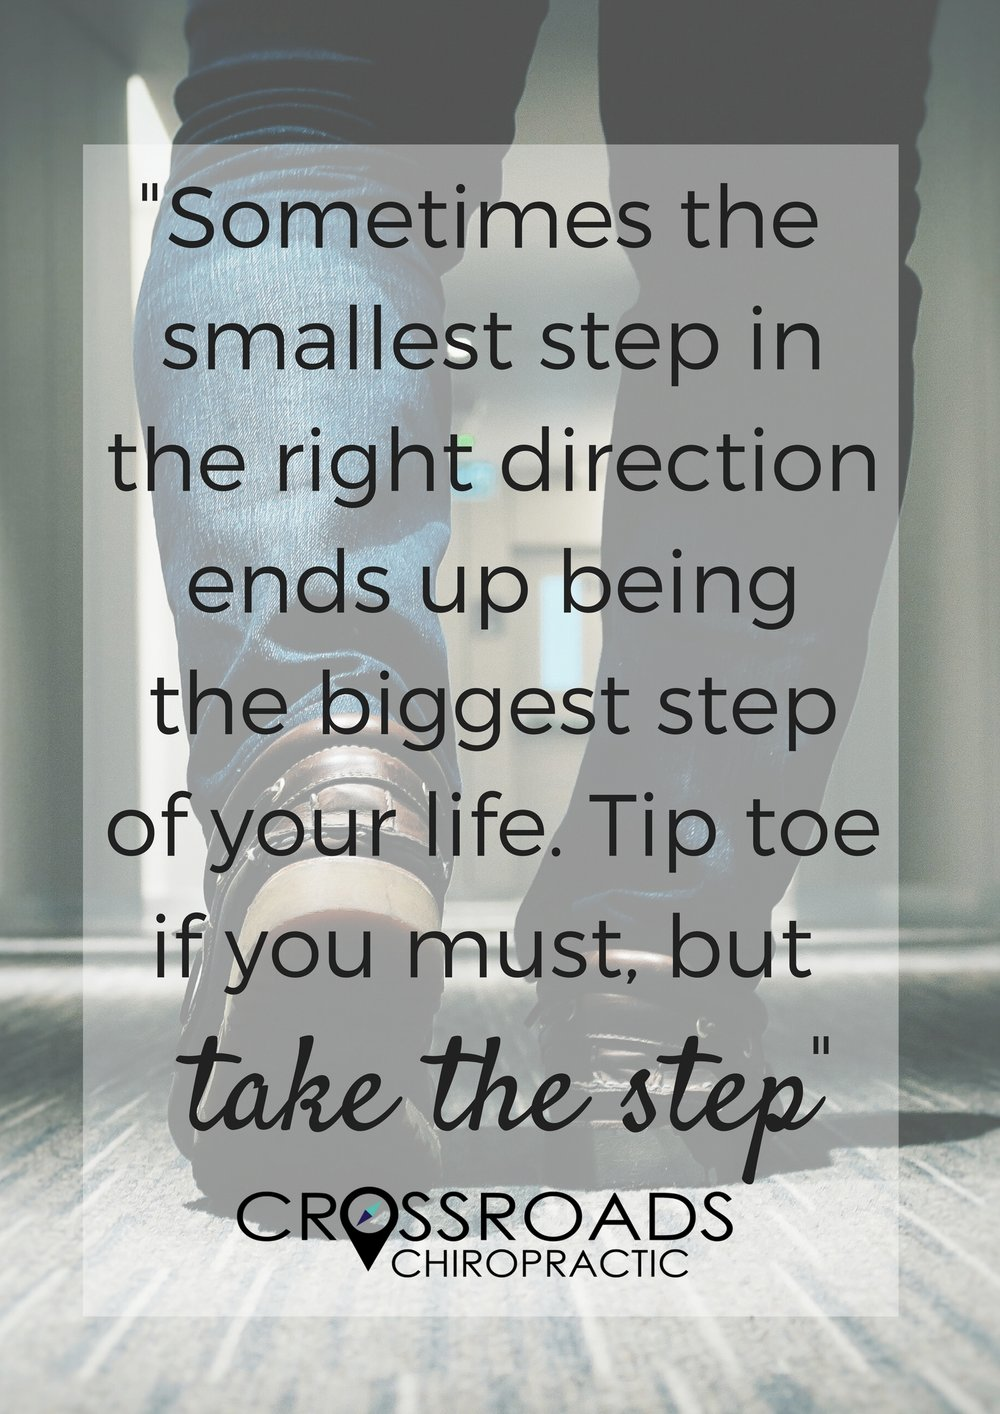 """""""Sometimes the smallest step in the right direction ends up being the biggest step of your life. Tip toe if you must, but take the step"""".jpg"""